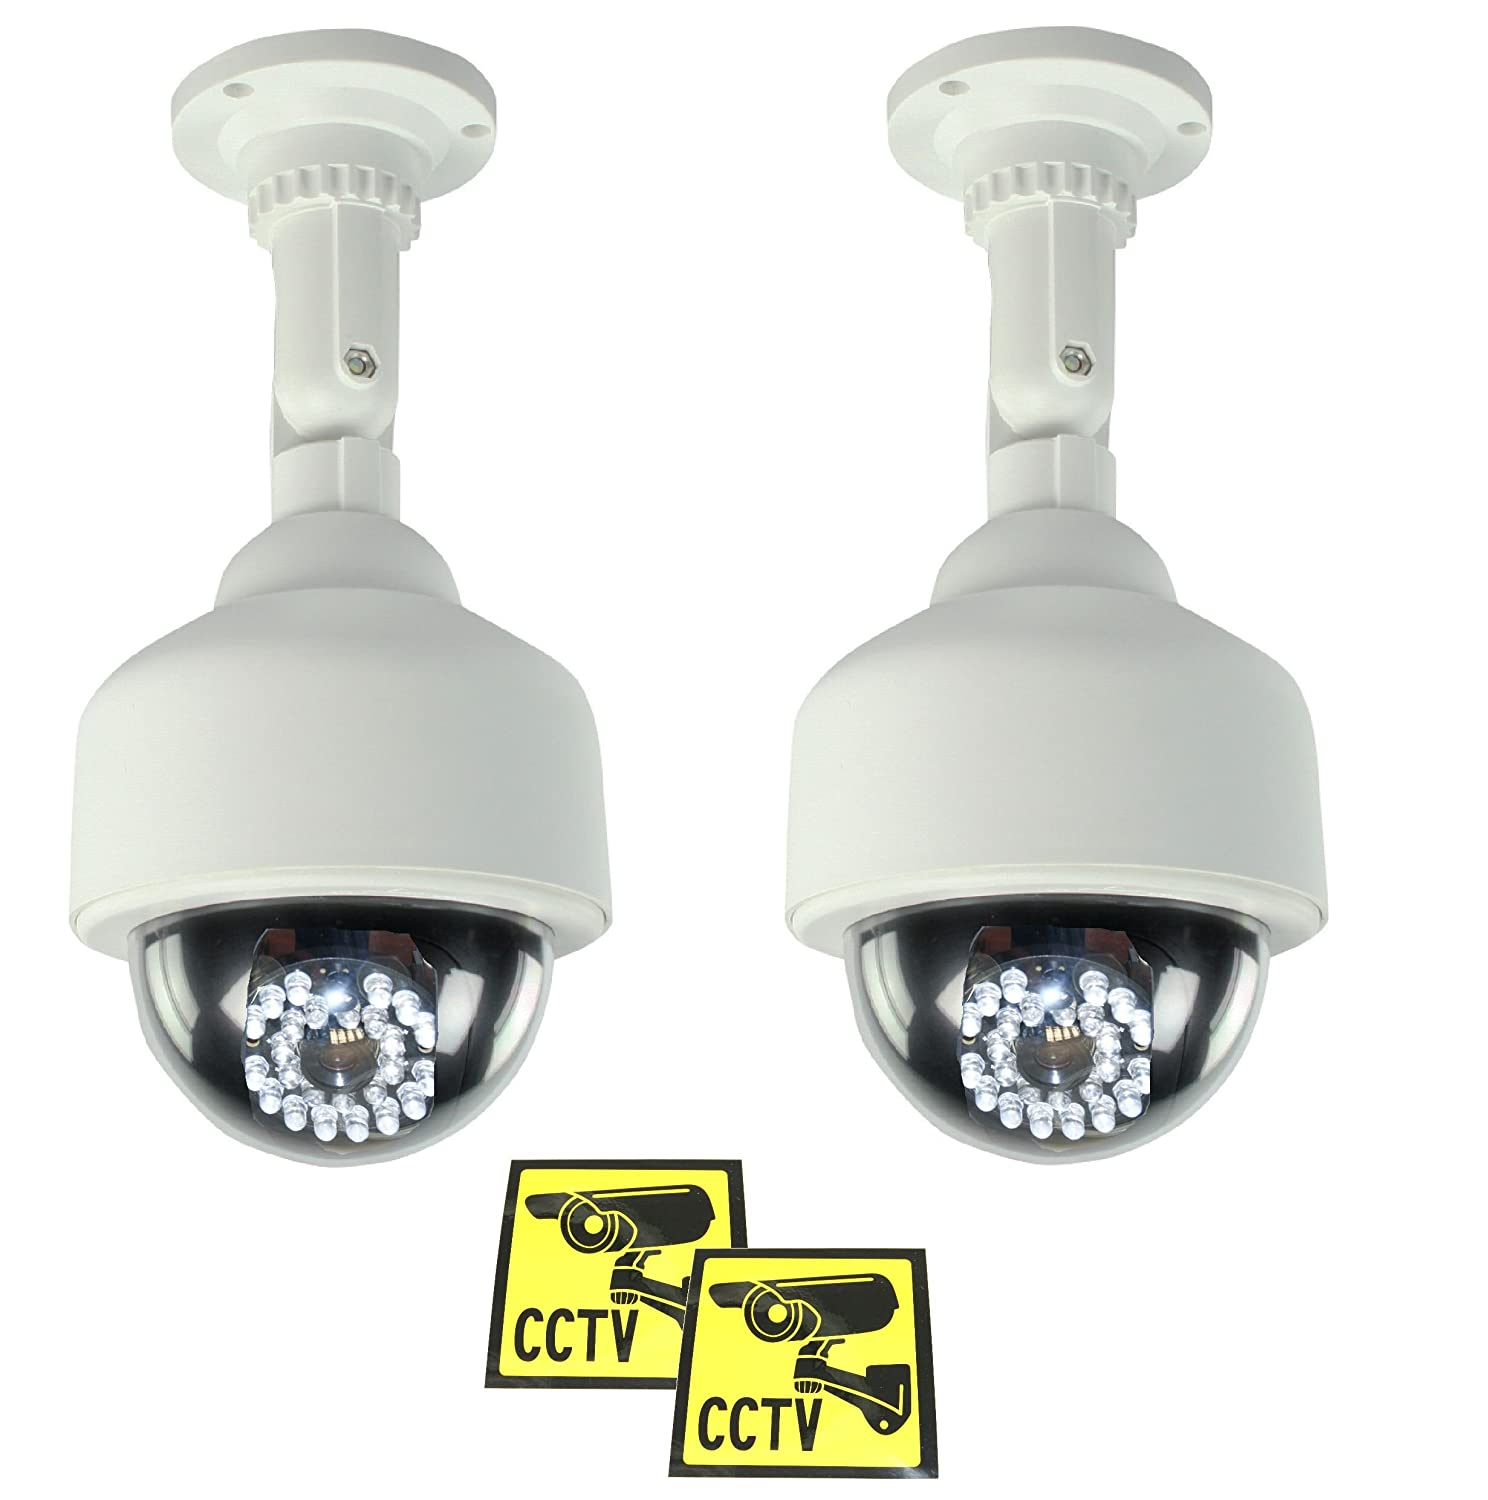 2 PACK Ex-Pro Black Dummy//Fake CCTV Security Dome Camera With built-in Flashing LED